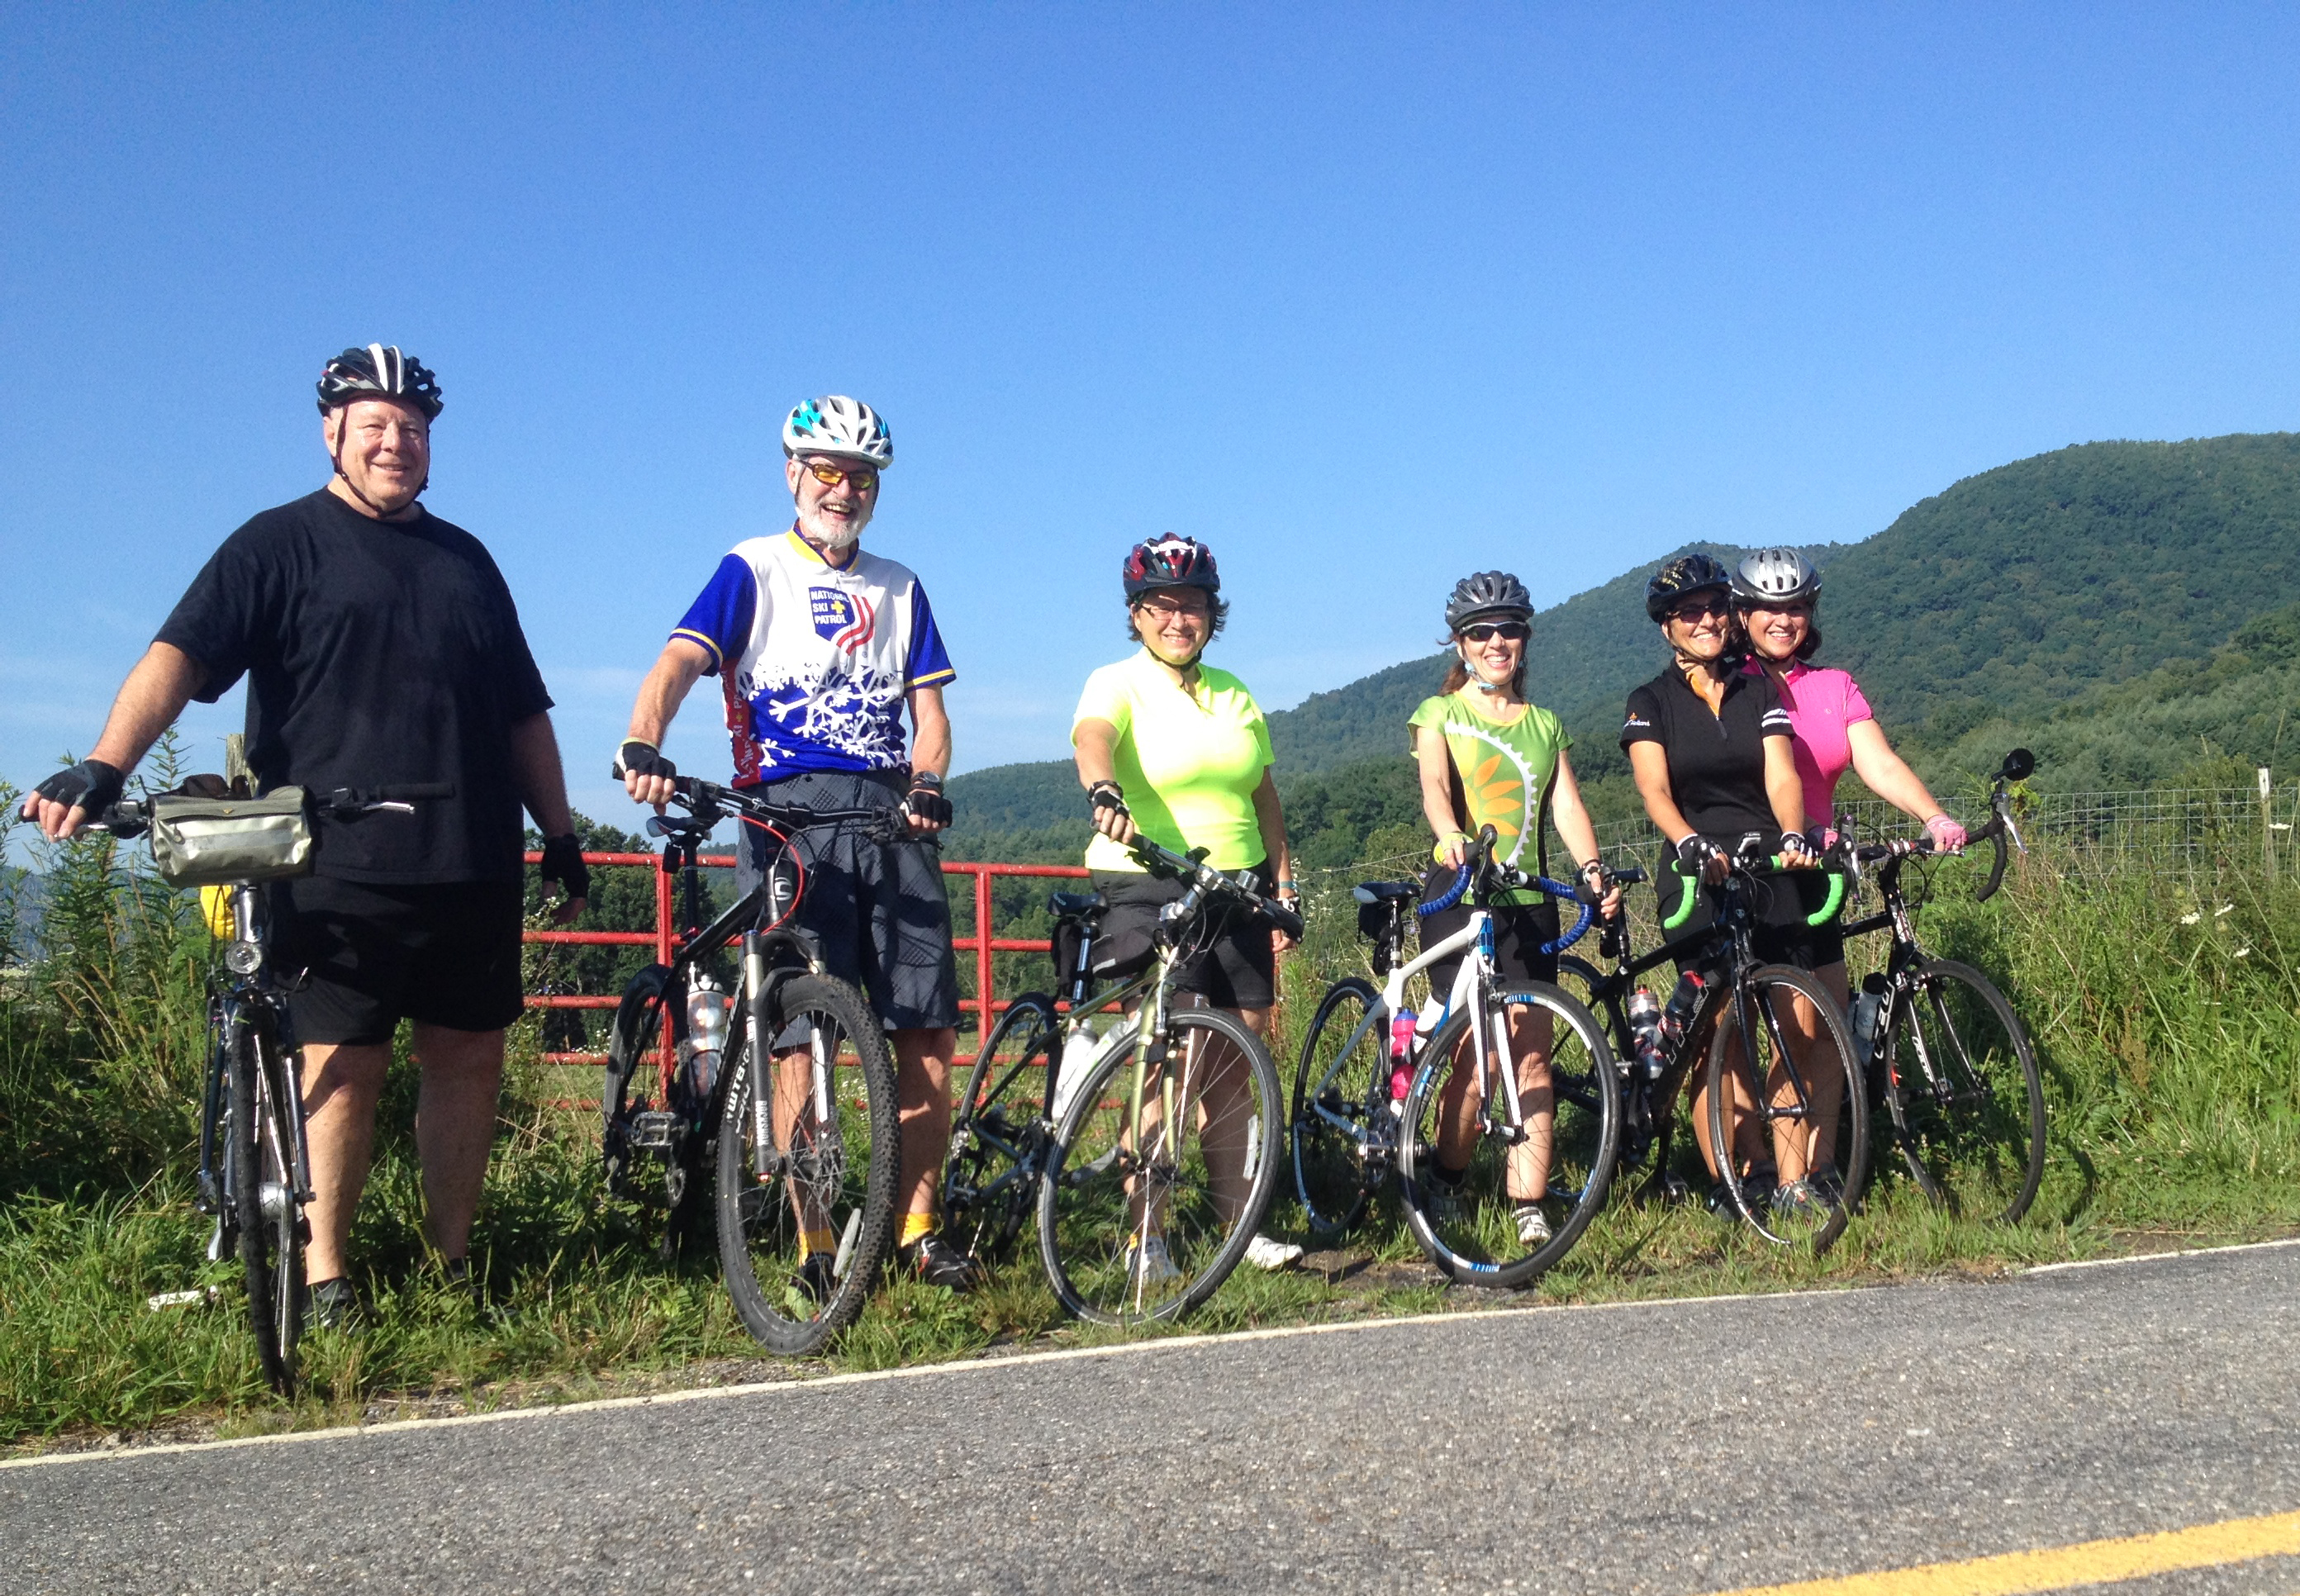 Cyclists in North Fork Valley